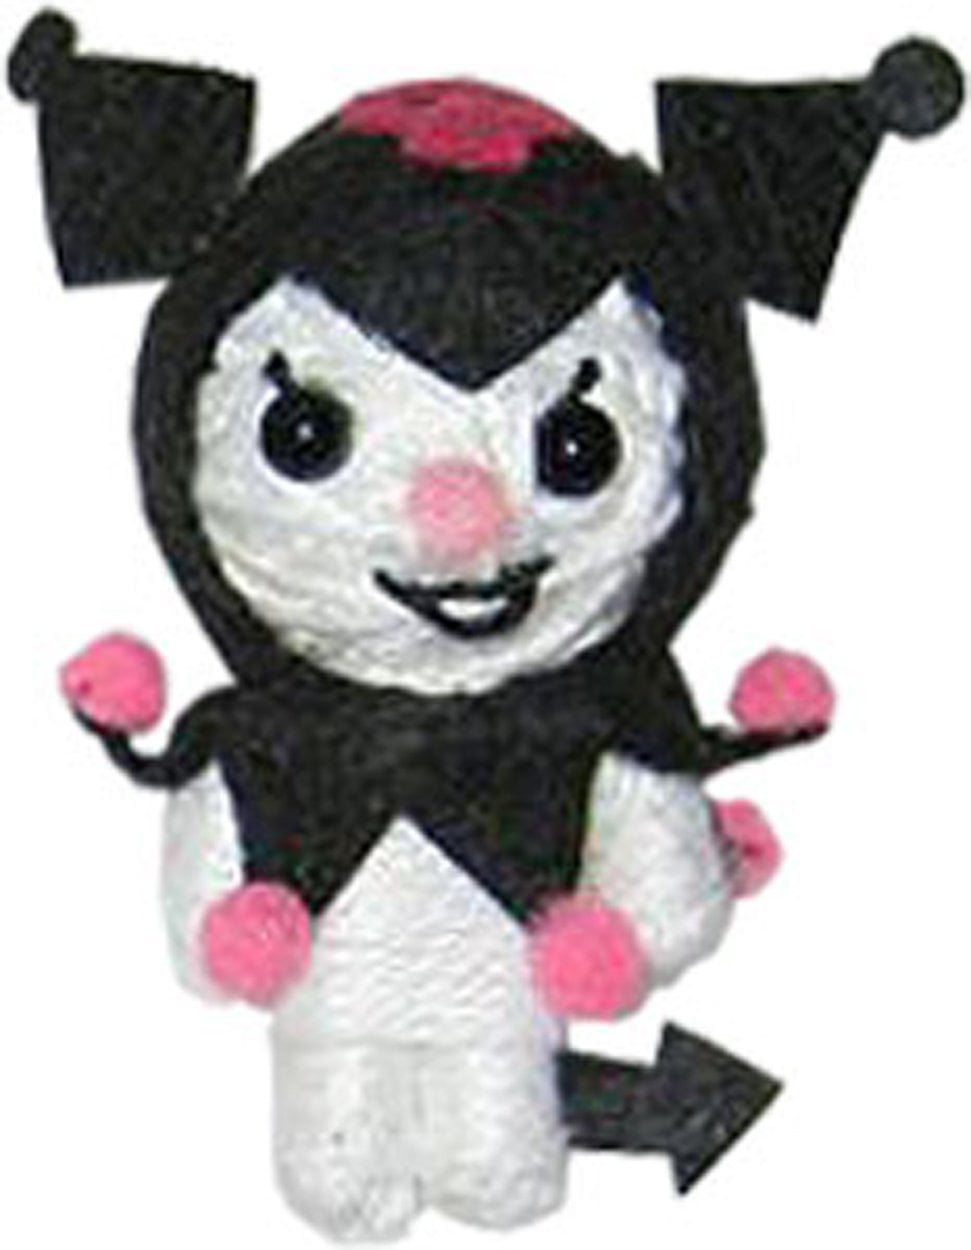 Cell Phone Charm Hello Kitty Kuromi Devil New Toys String Doll vd-hk-0005 by C & D